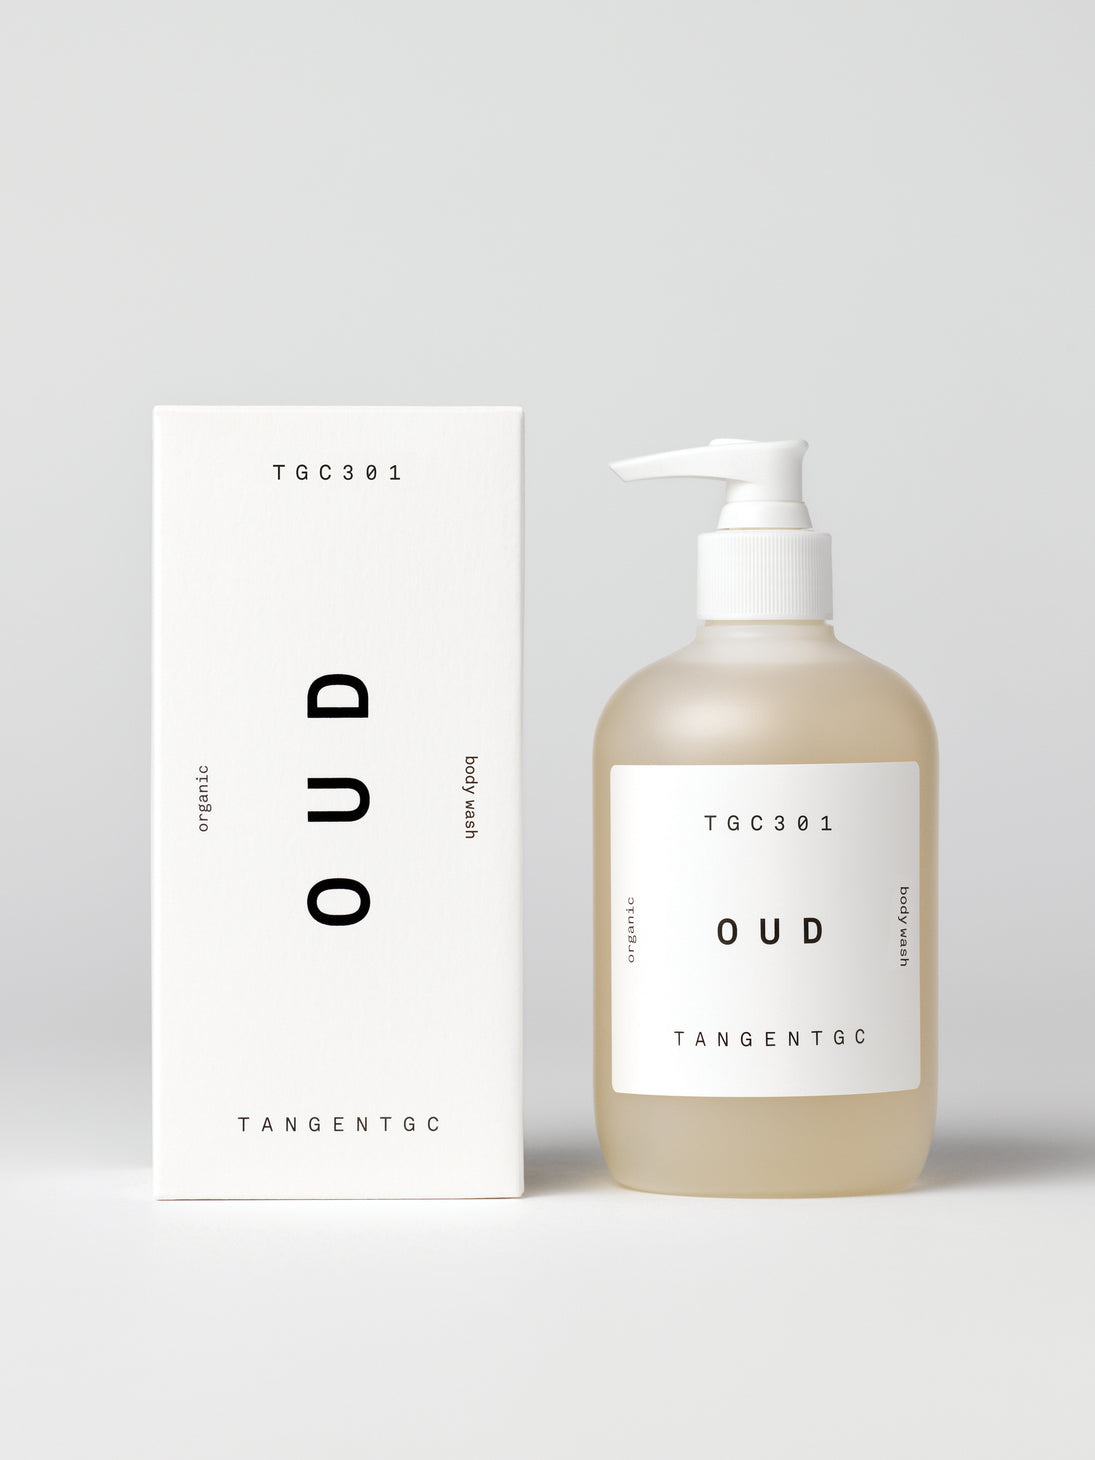 TGC301 Oud Body Wash Tangent GC